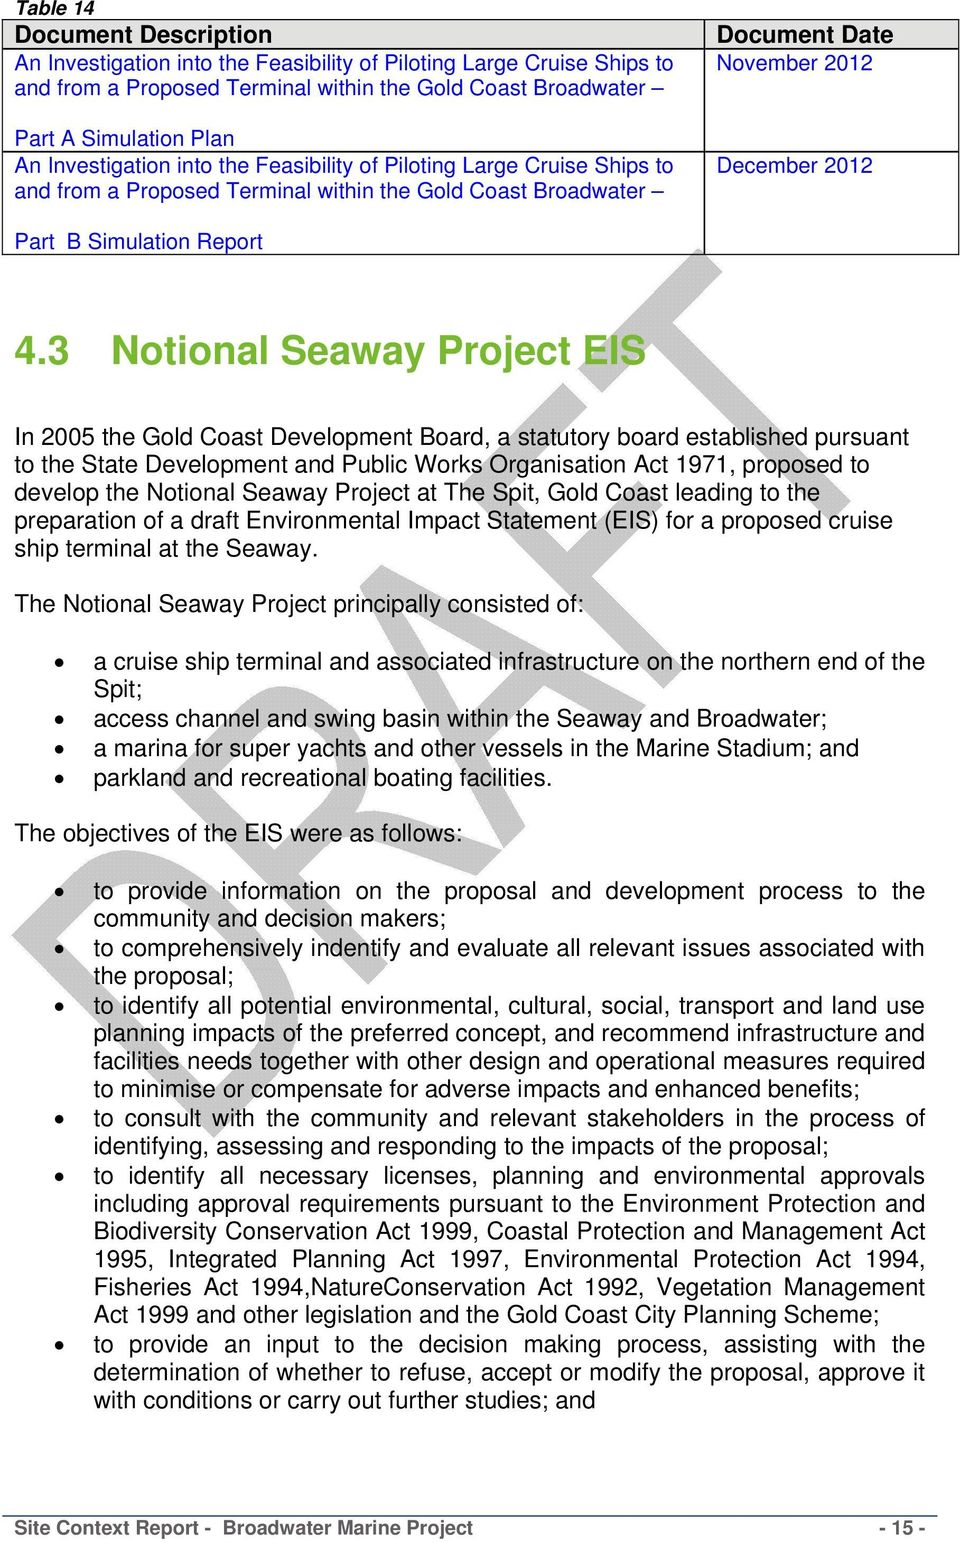 3 Notional Seaway Project EIS In 2005 the Gold Coast Development Board, a statutory board established pursuant to the State Development and Public Works Organisation Act 1971, proposed to develop the